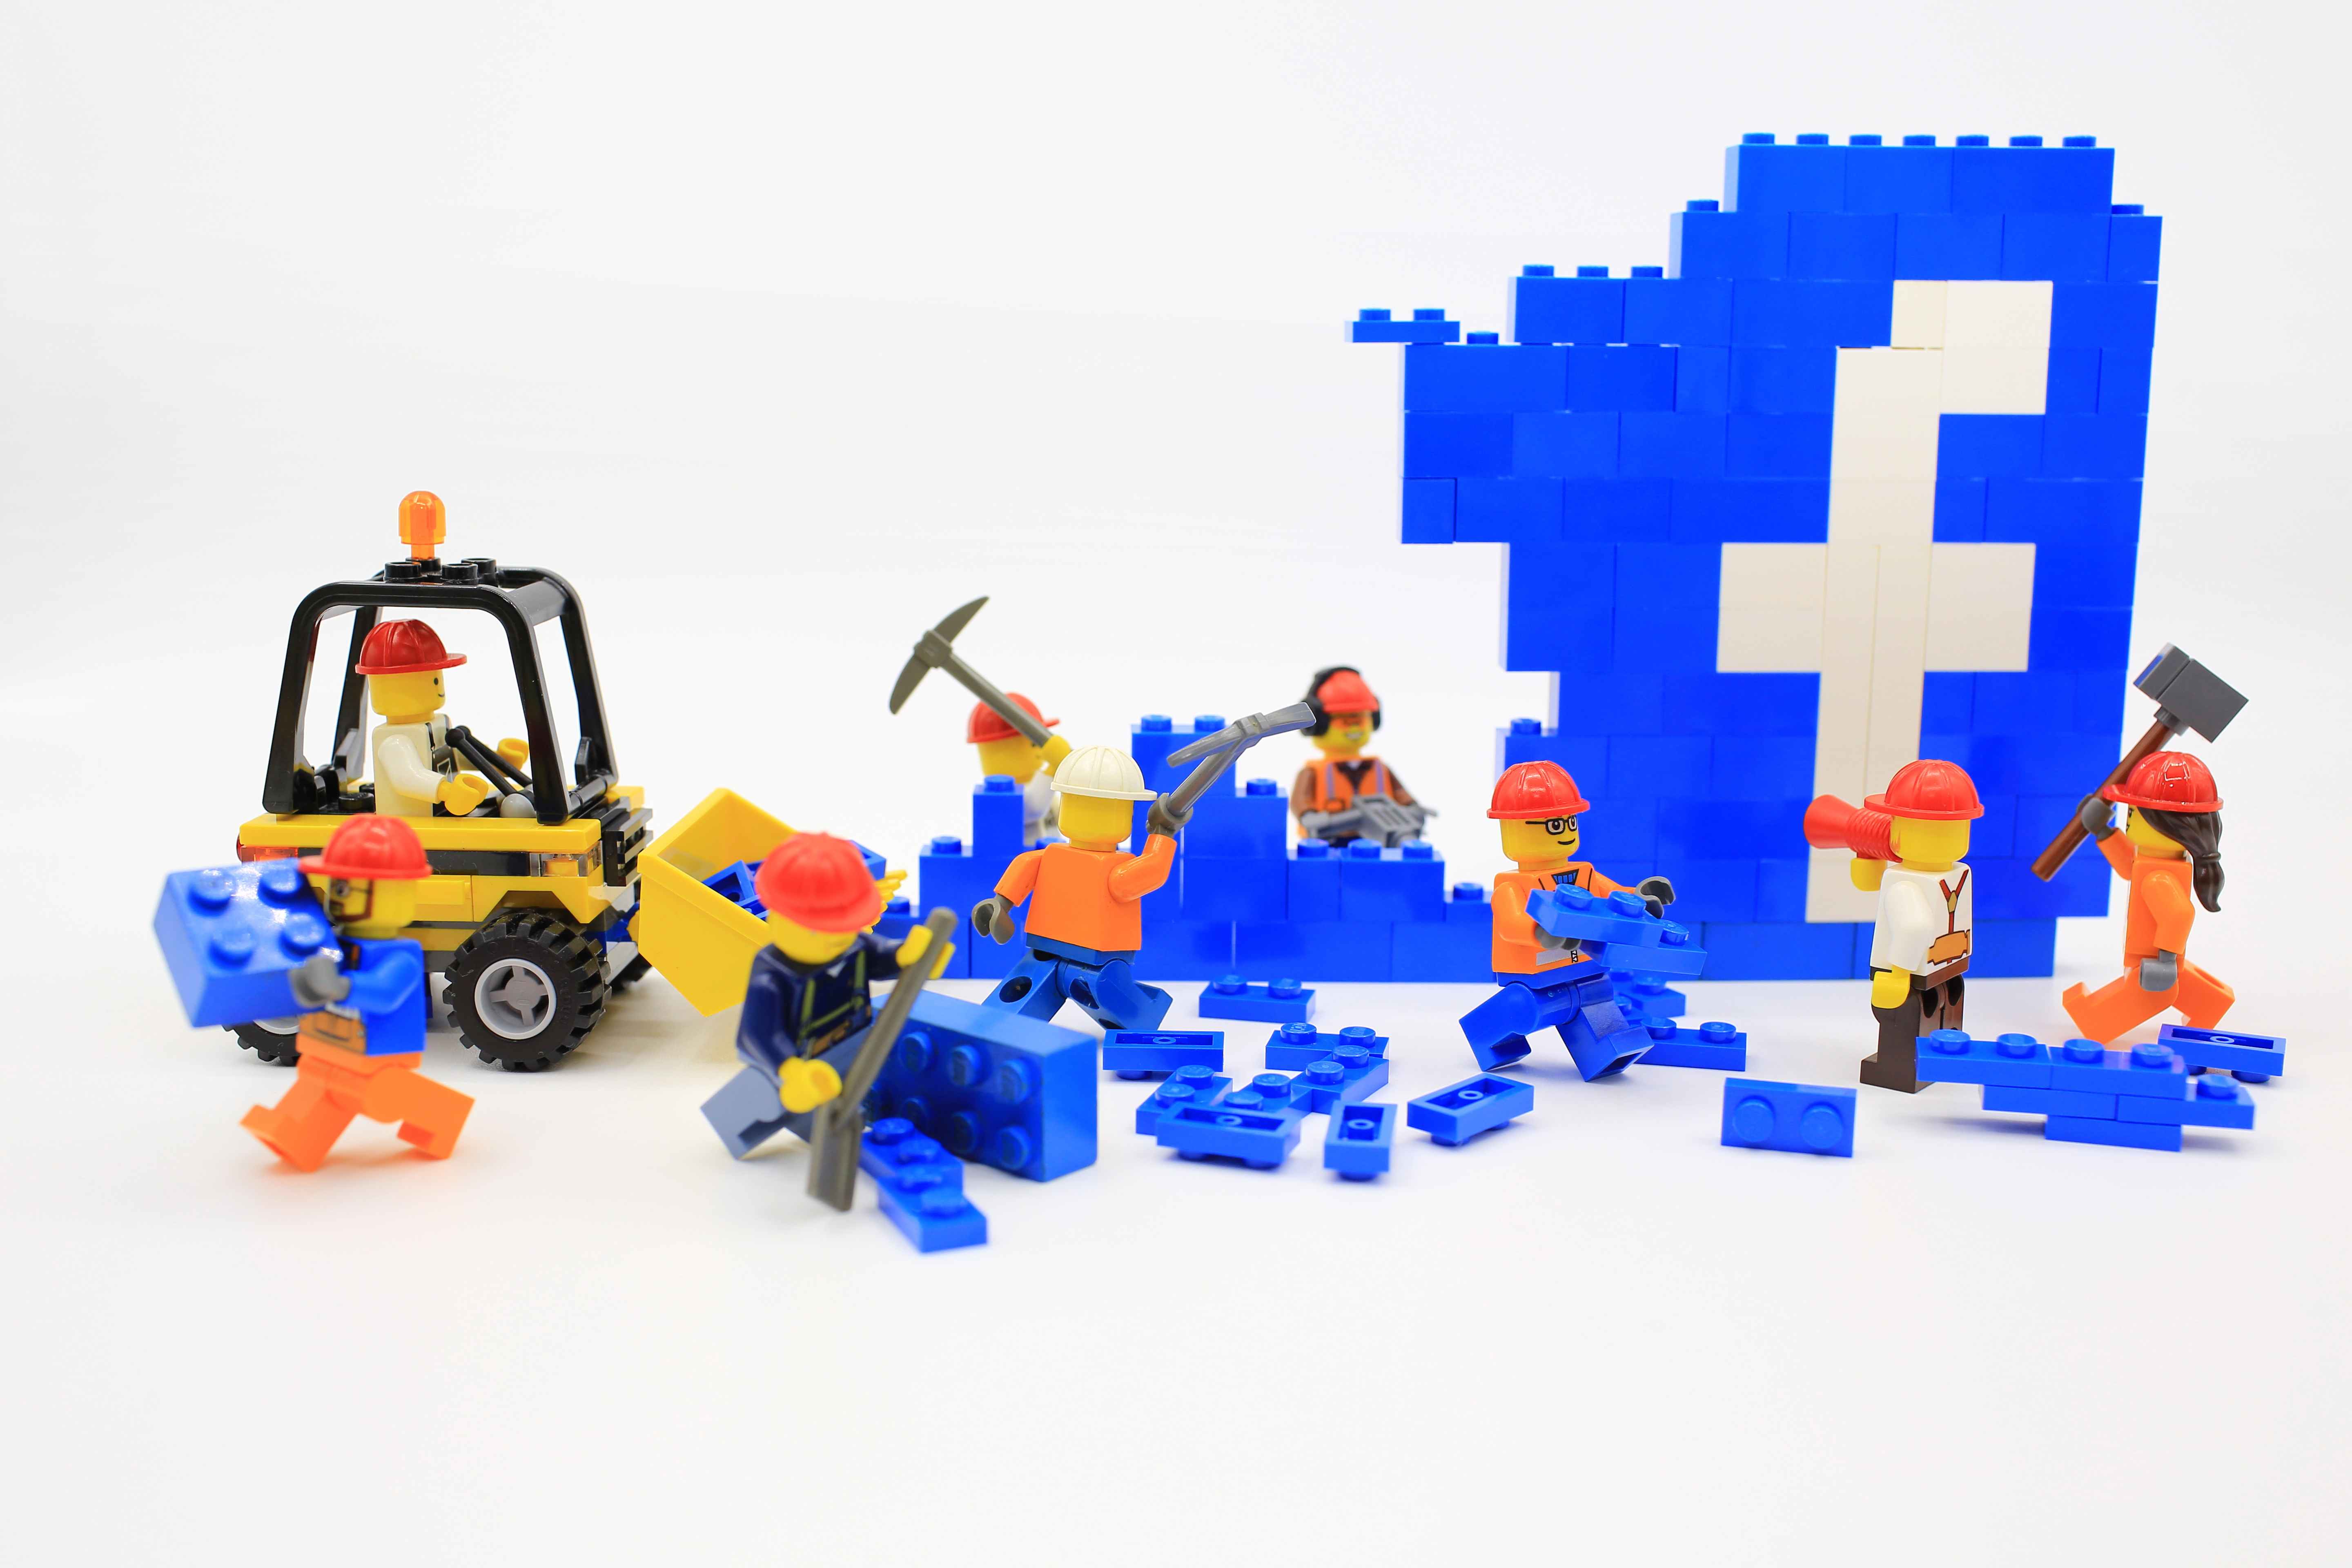 Lego-figurine construction people work on a blue Lego structure with the Facebook f built in